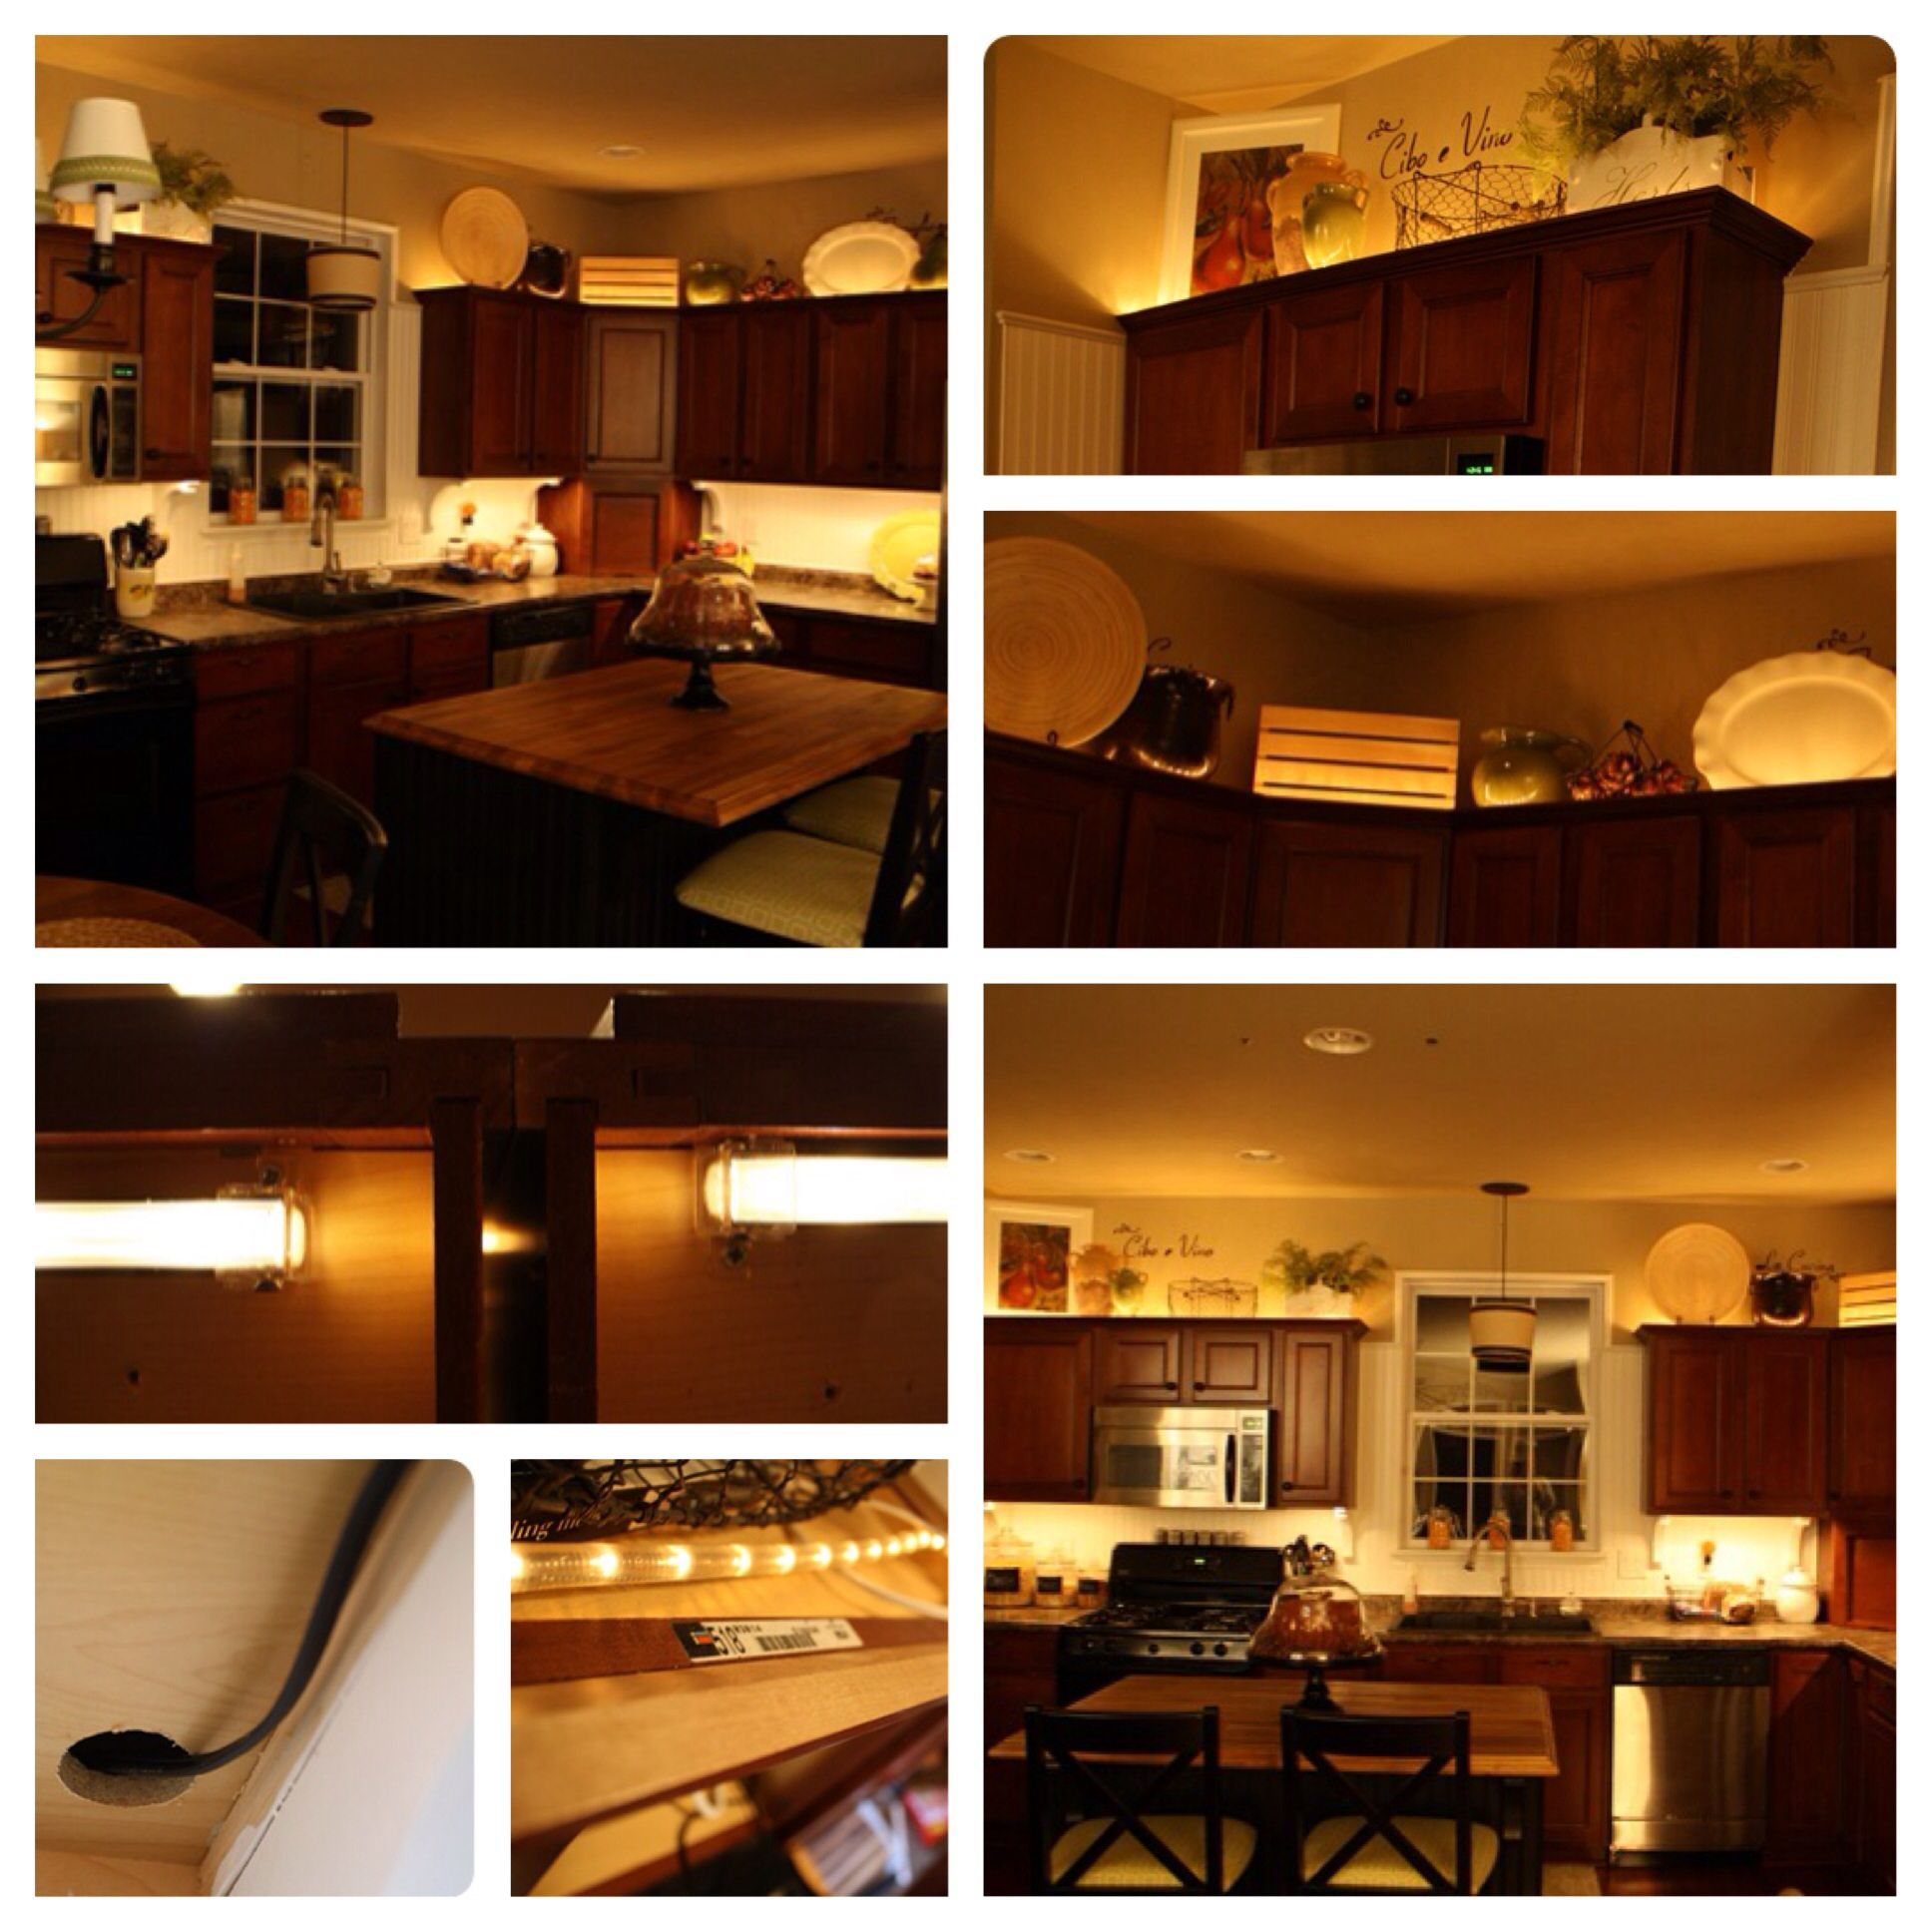 Adding Lights Above And Below The Cabinets. #DIY Christmas